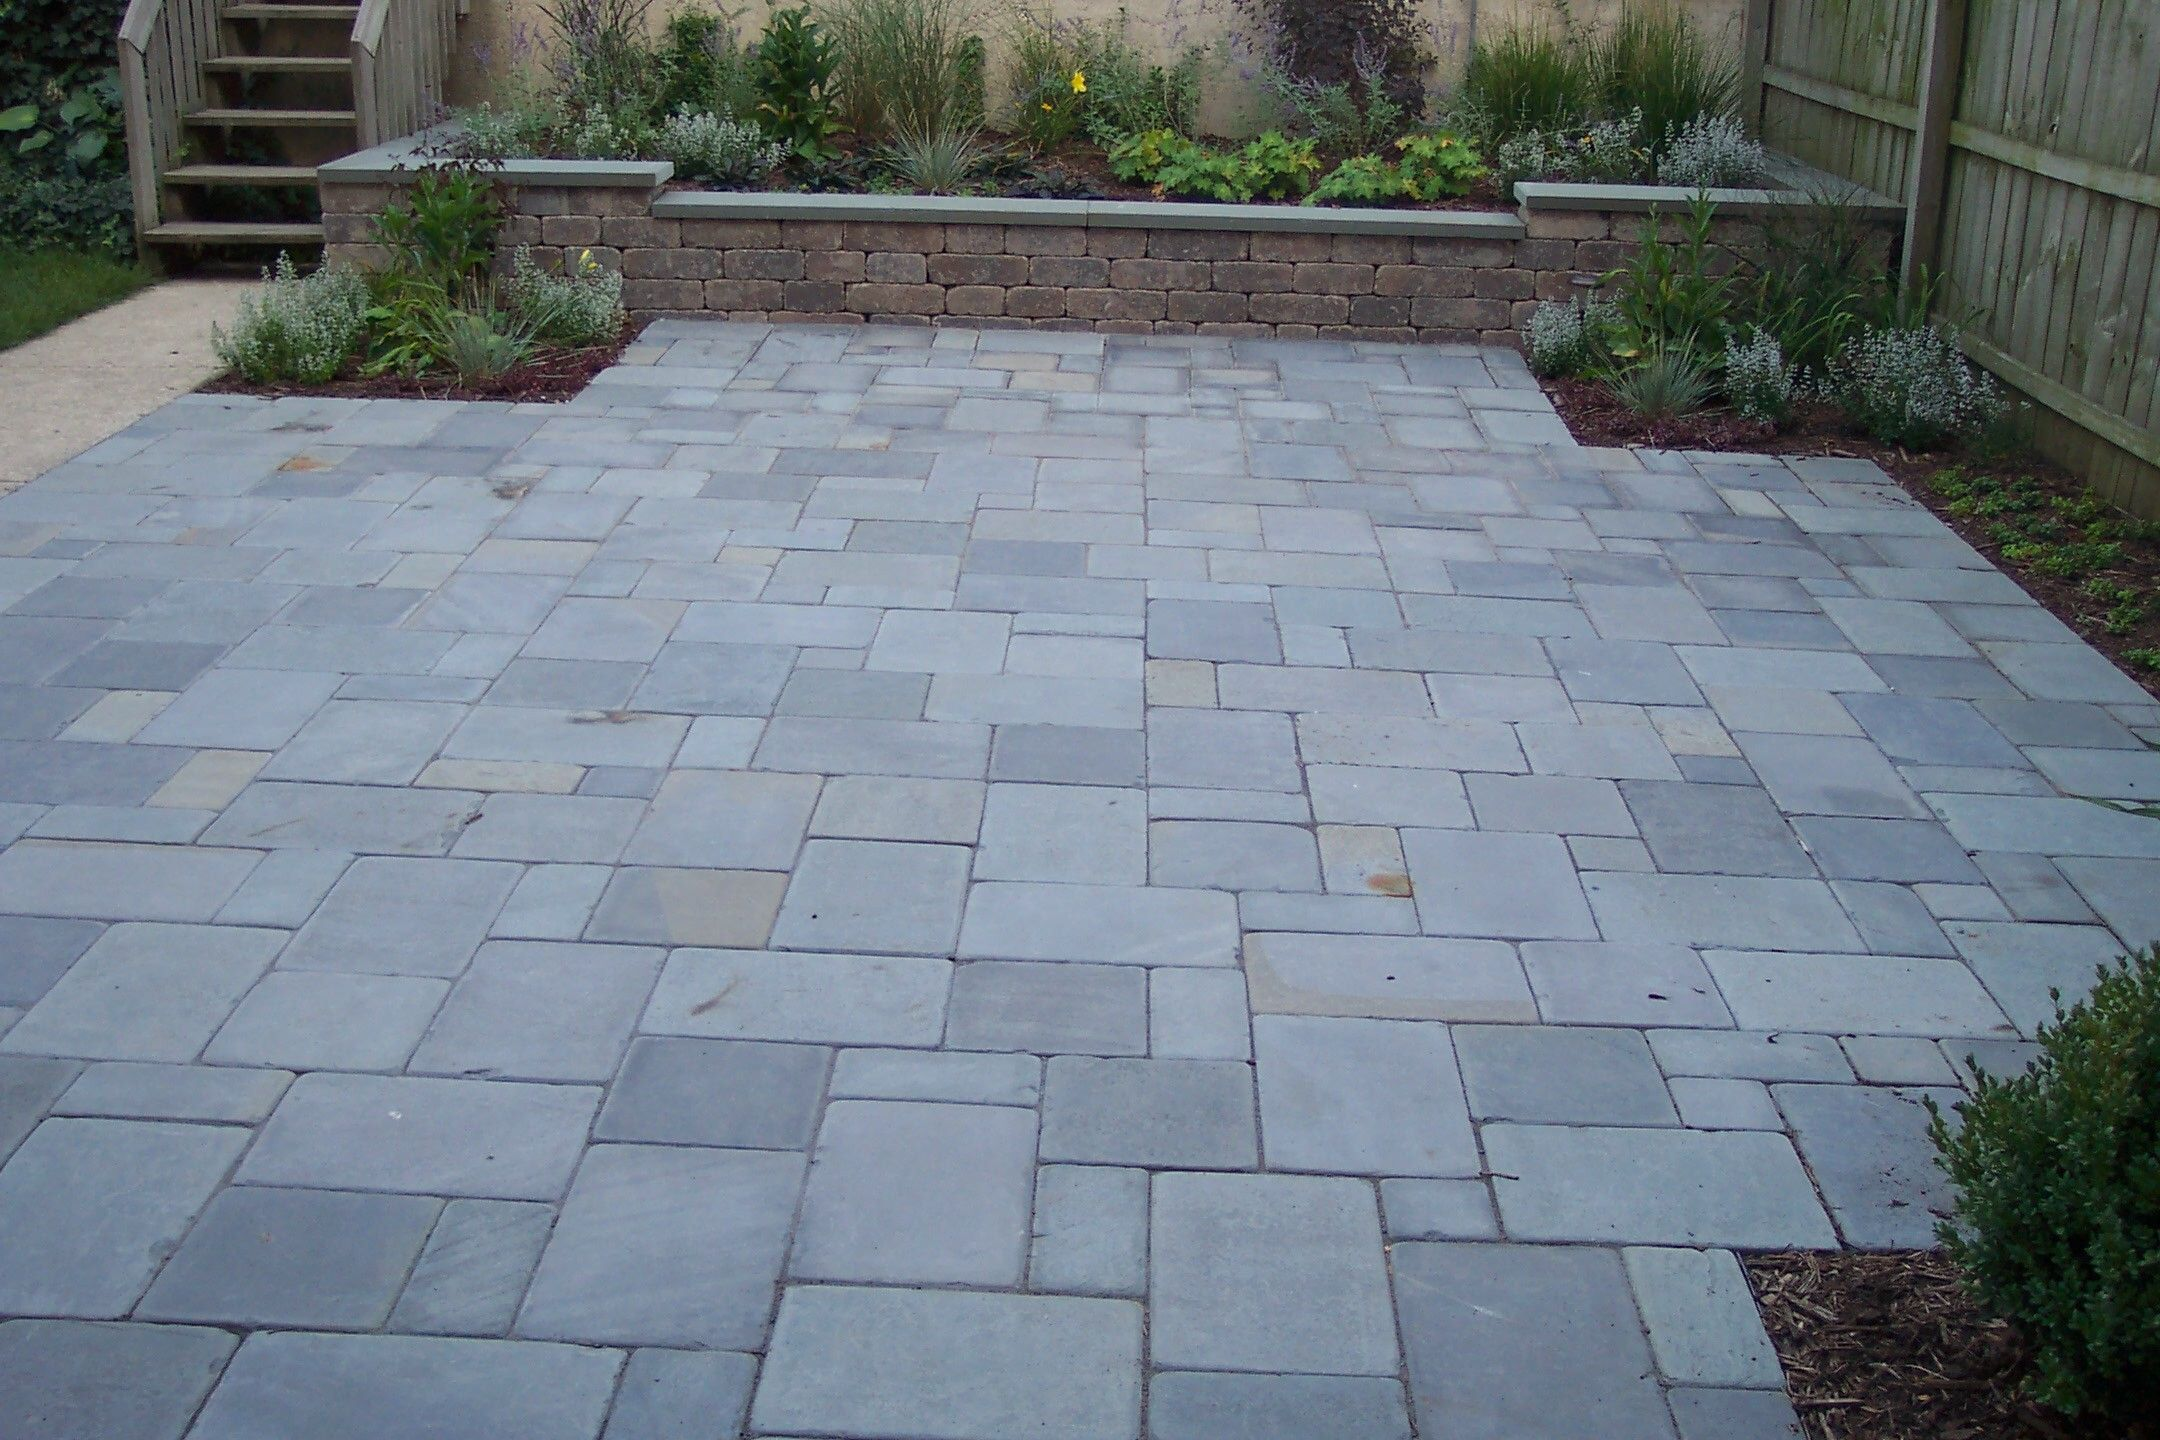 The best stone patio ideas stone patios patios and for Pictures of stone patios